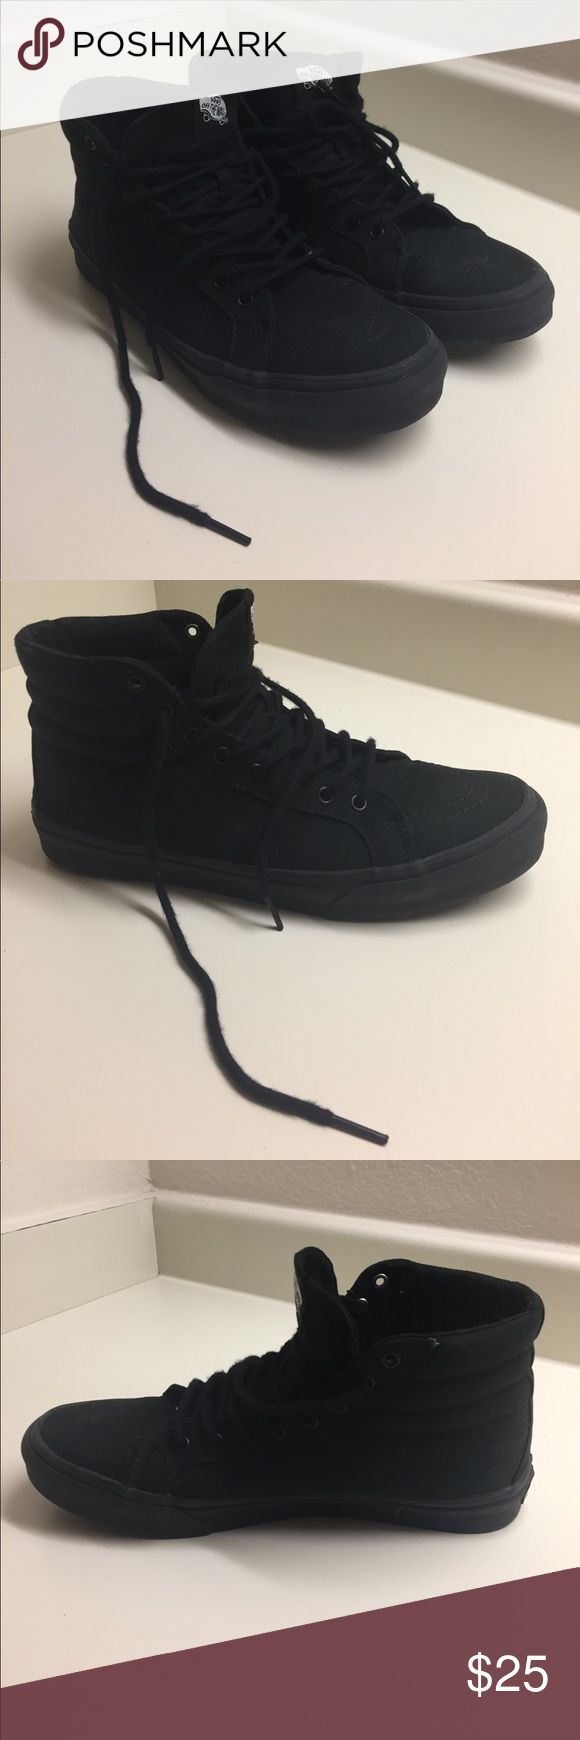 All Black Sk8-Hi Vans Women's size 10, Men's size 8.5. All black canvas & rubber walls, black round laces, stitched design, sneakers, barely worn, good condition, waffled soles. Vans Shoes Sneakers